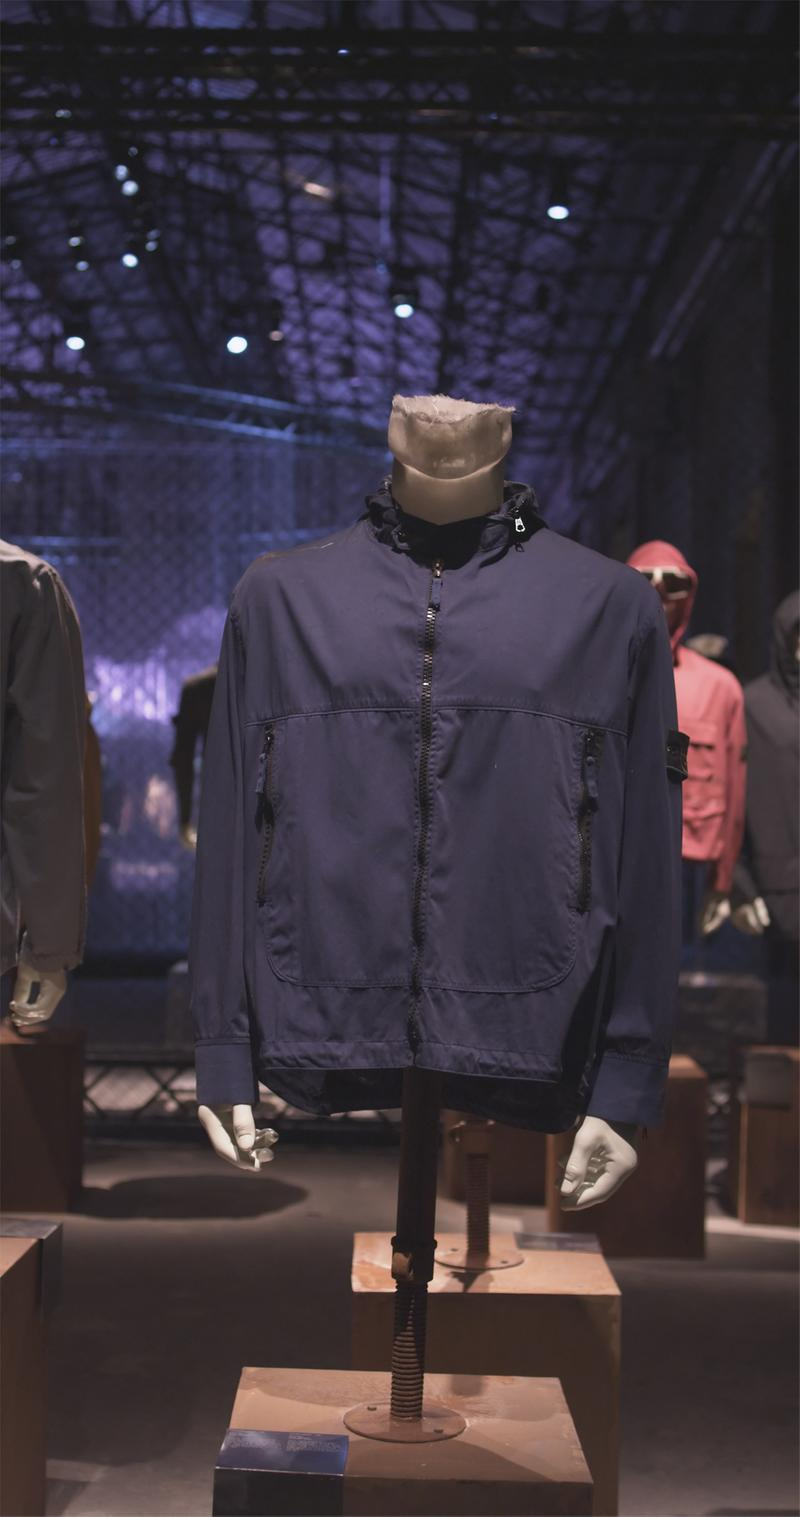 Dark blue zippered jacket with high collar and pockets with zipper closure, displayed on mannequin bust in exhibition hall